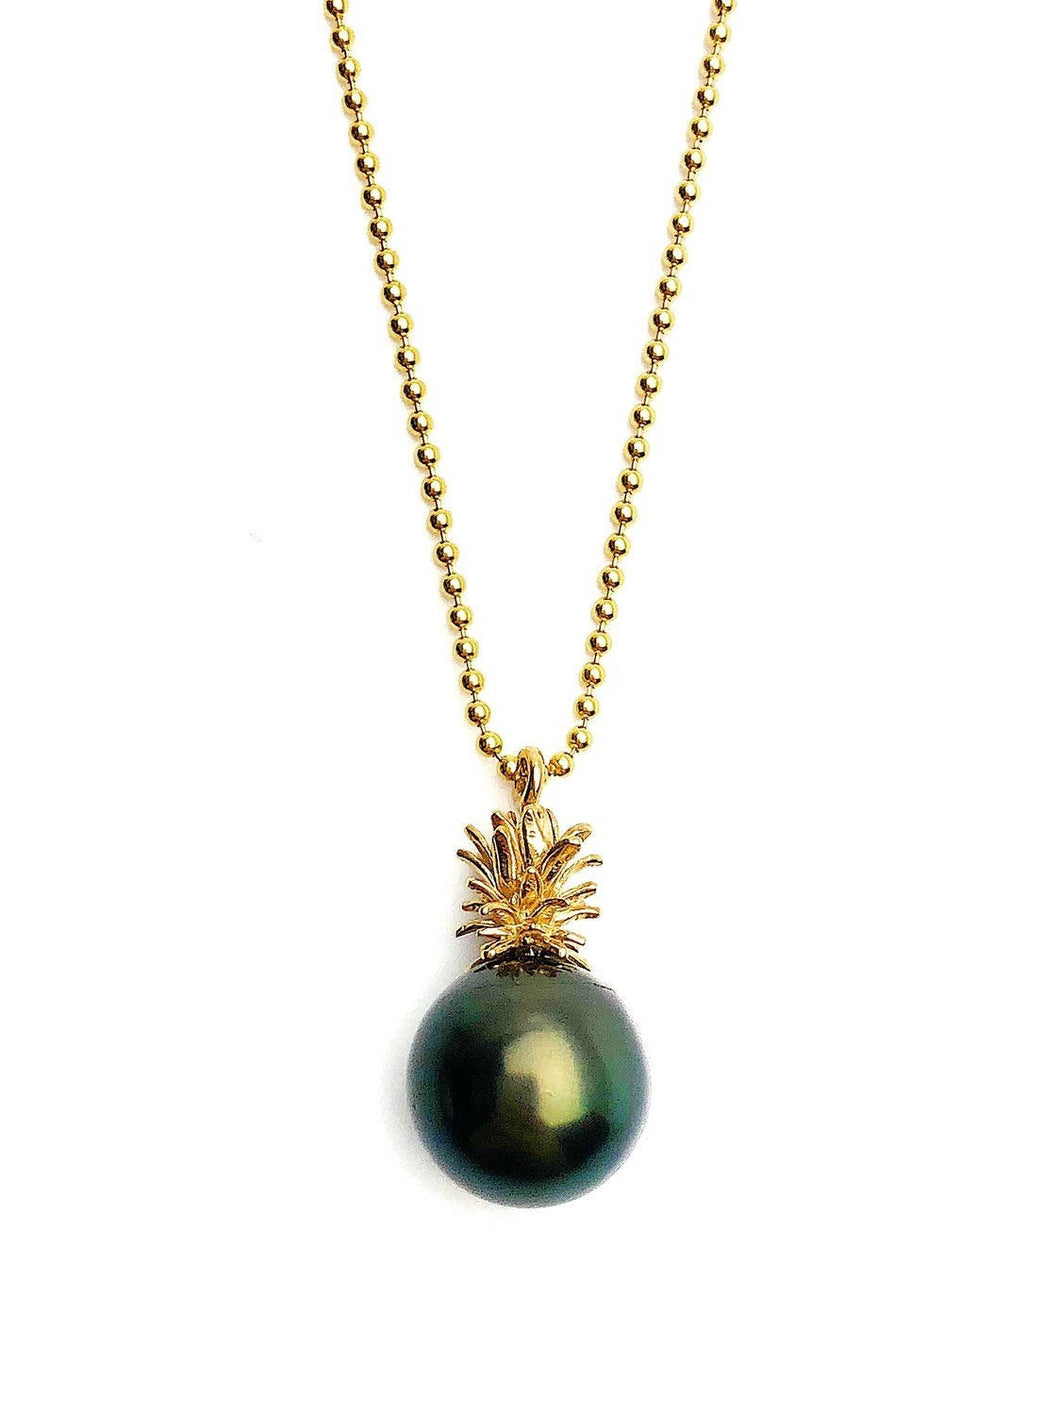 Pineapple Pearl Pendant Setting - Gold Vermeil -Made in Hawaii, Pendant